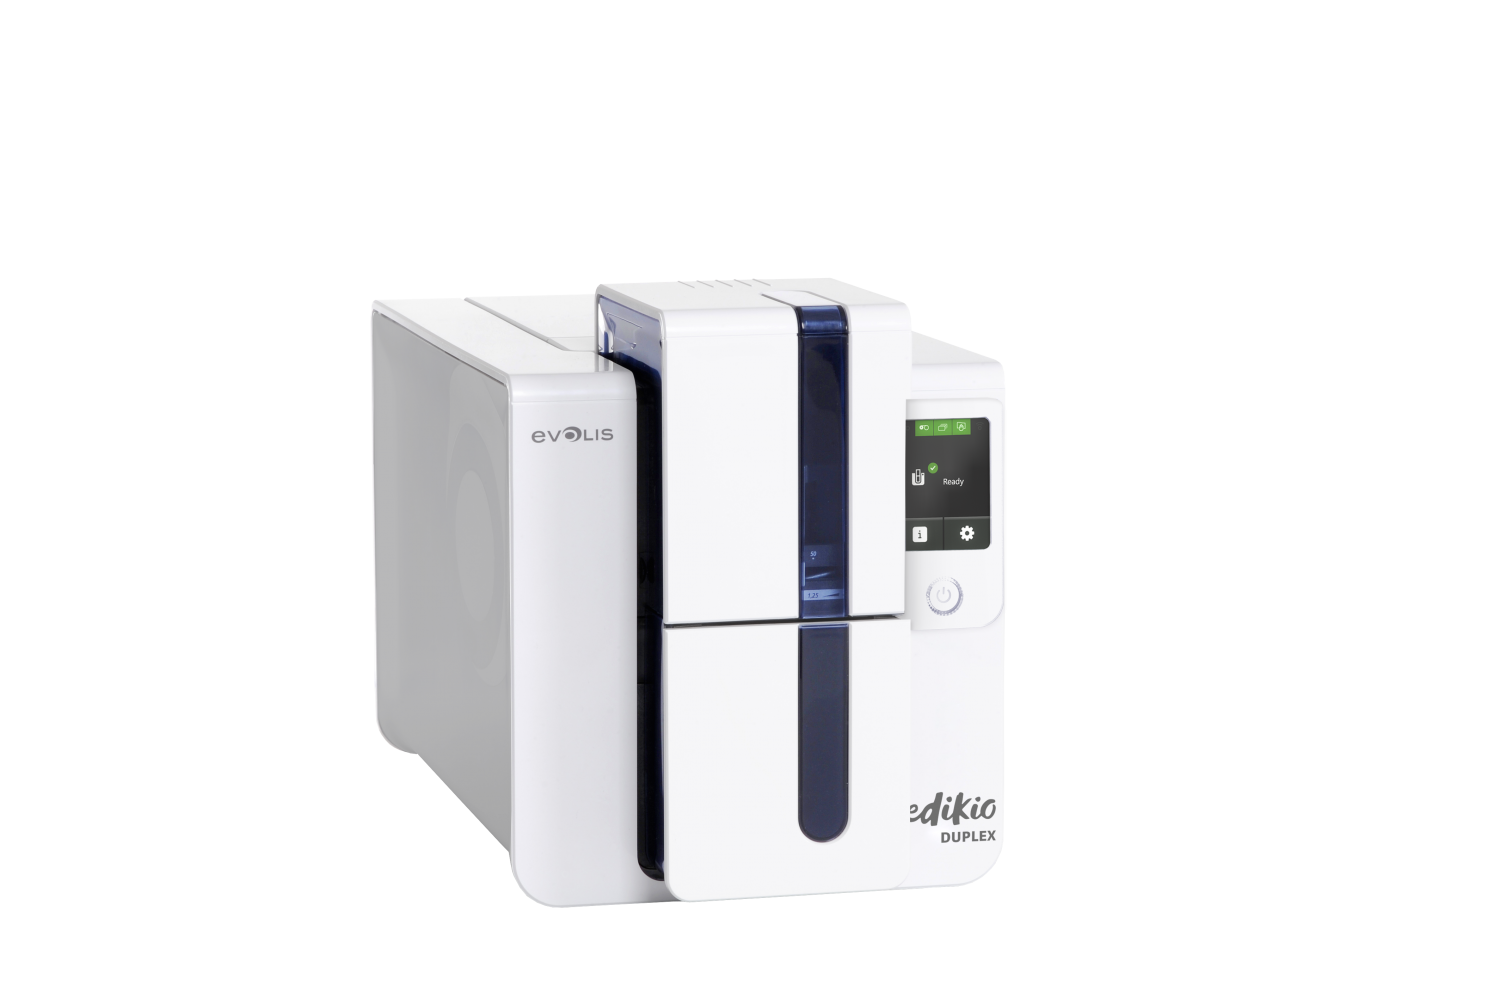 Edikio duplex printer